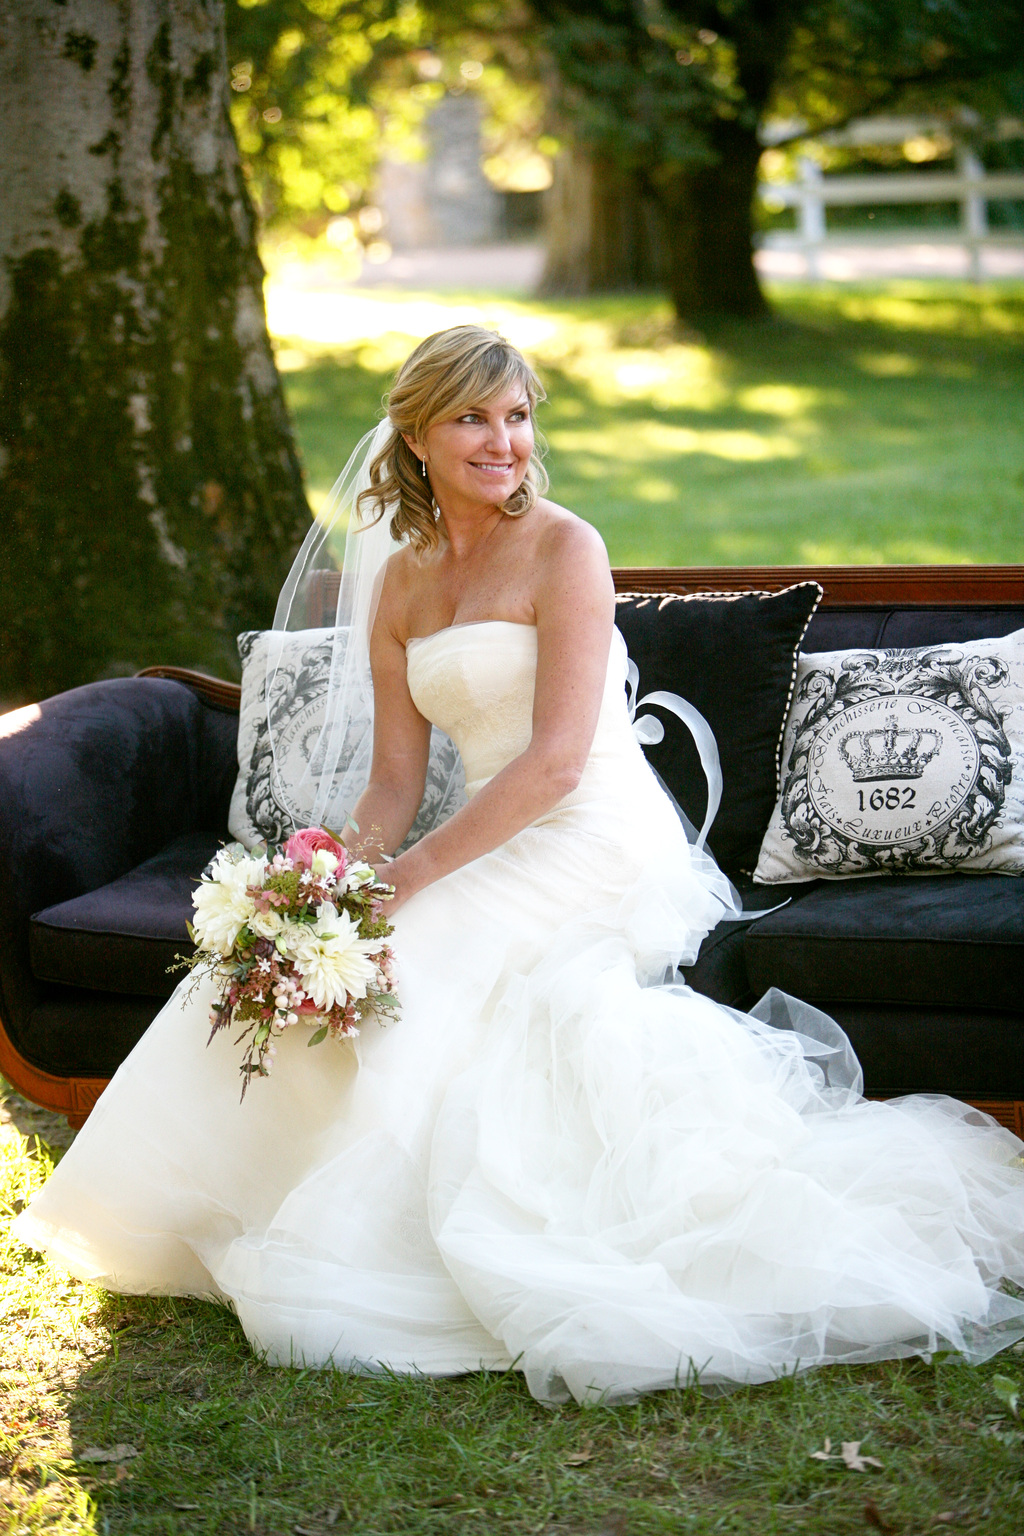 Southern-bride-poses-outdoors-on-vintage-couch.full